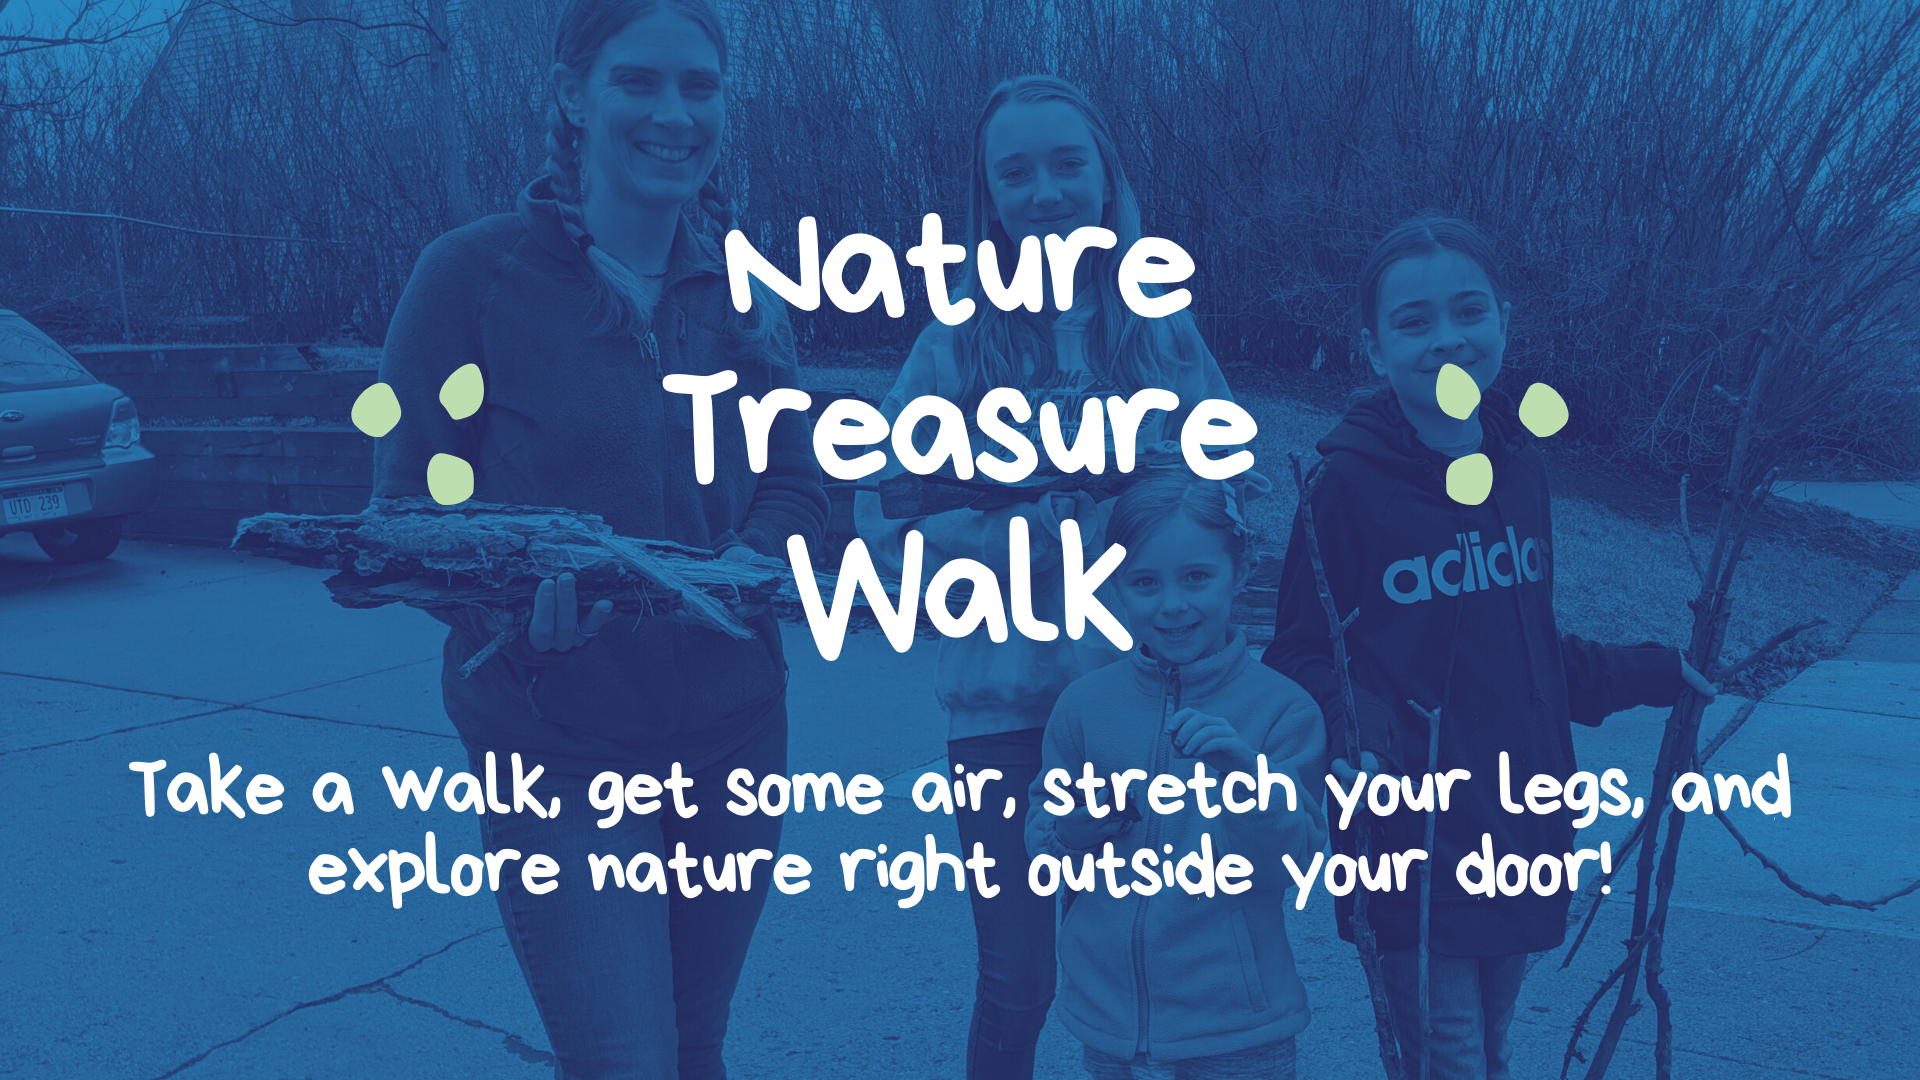 Nature Treasure Walk